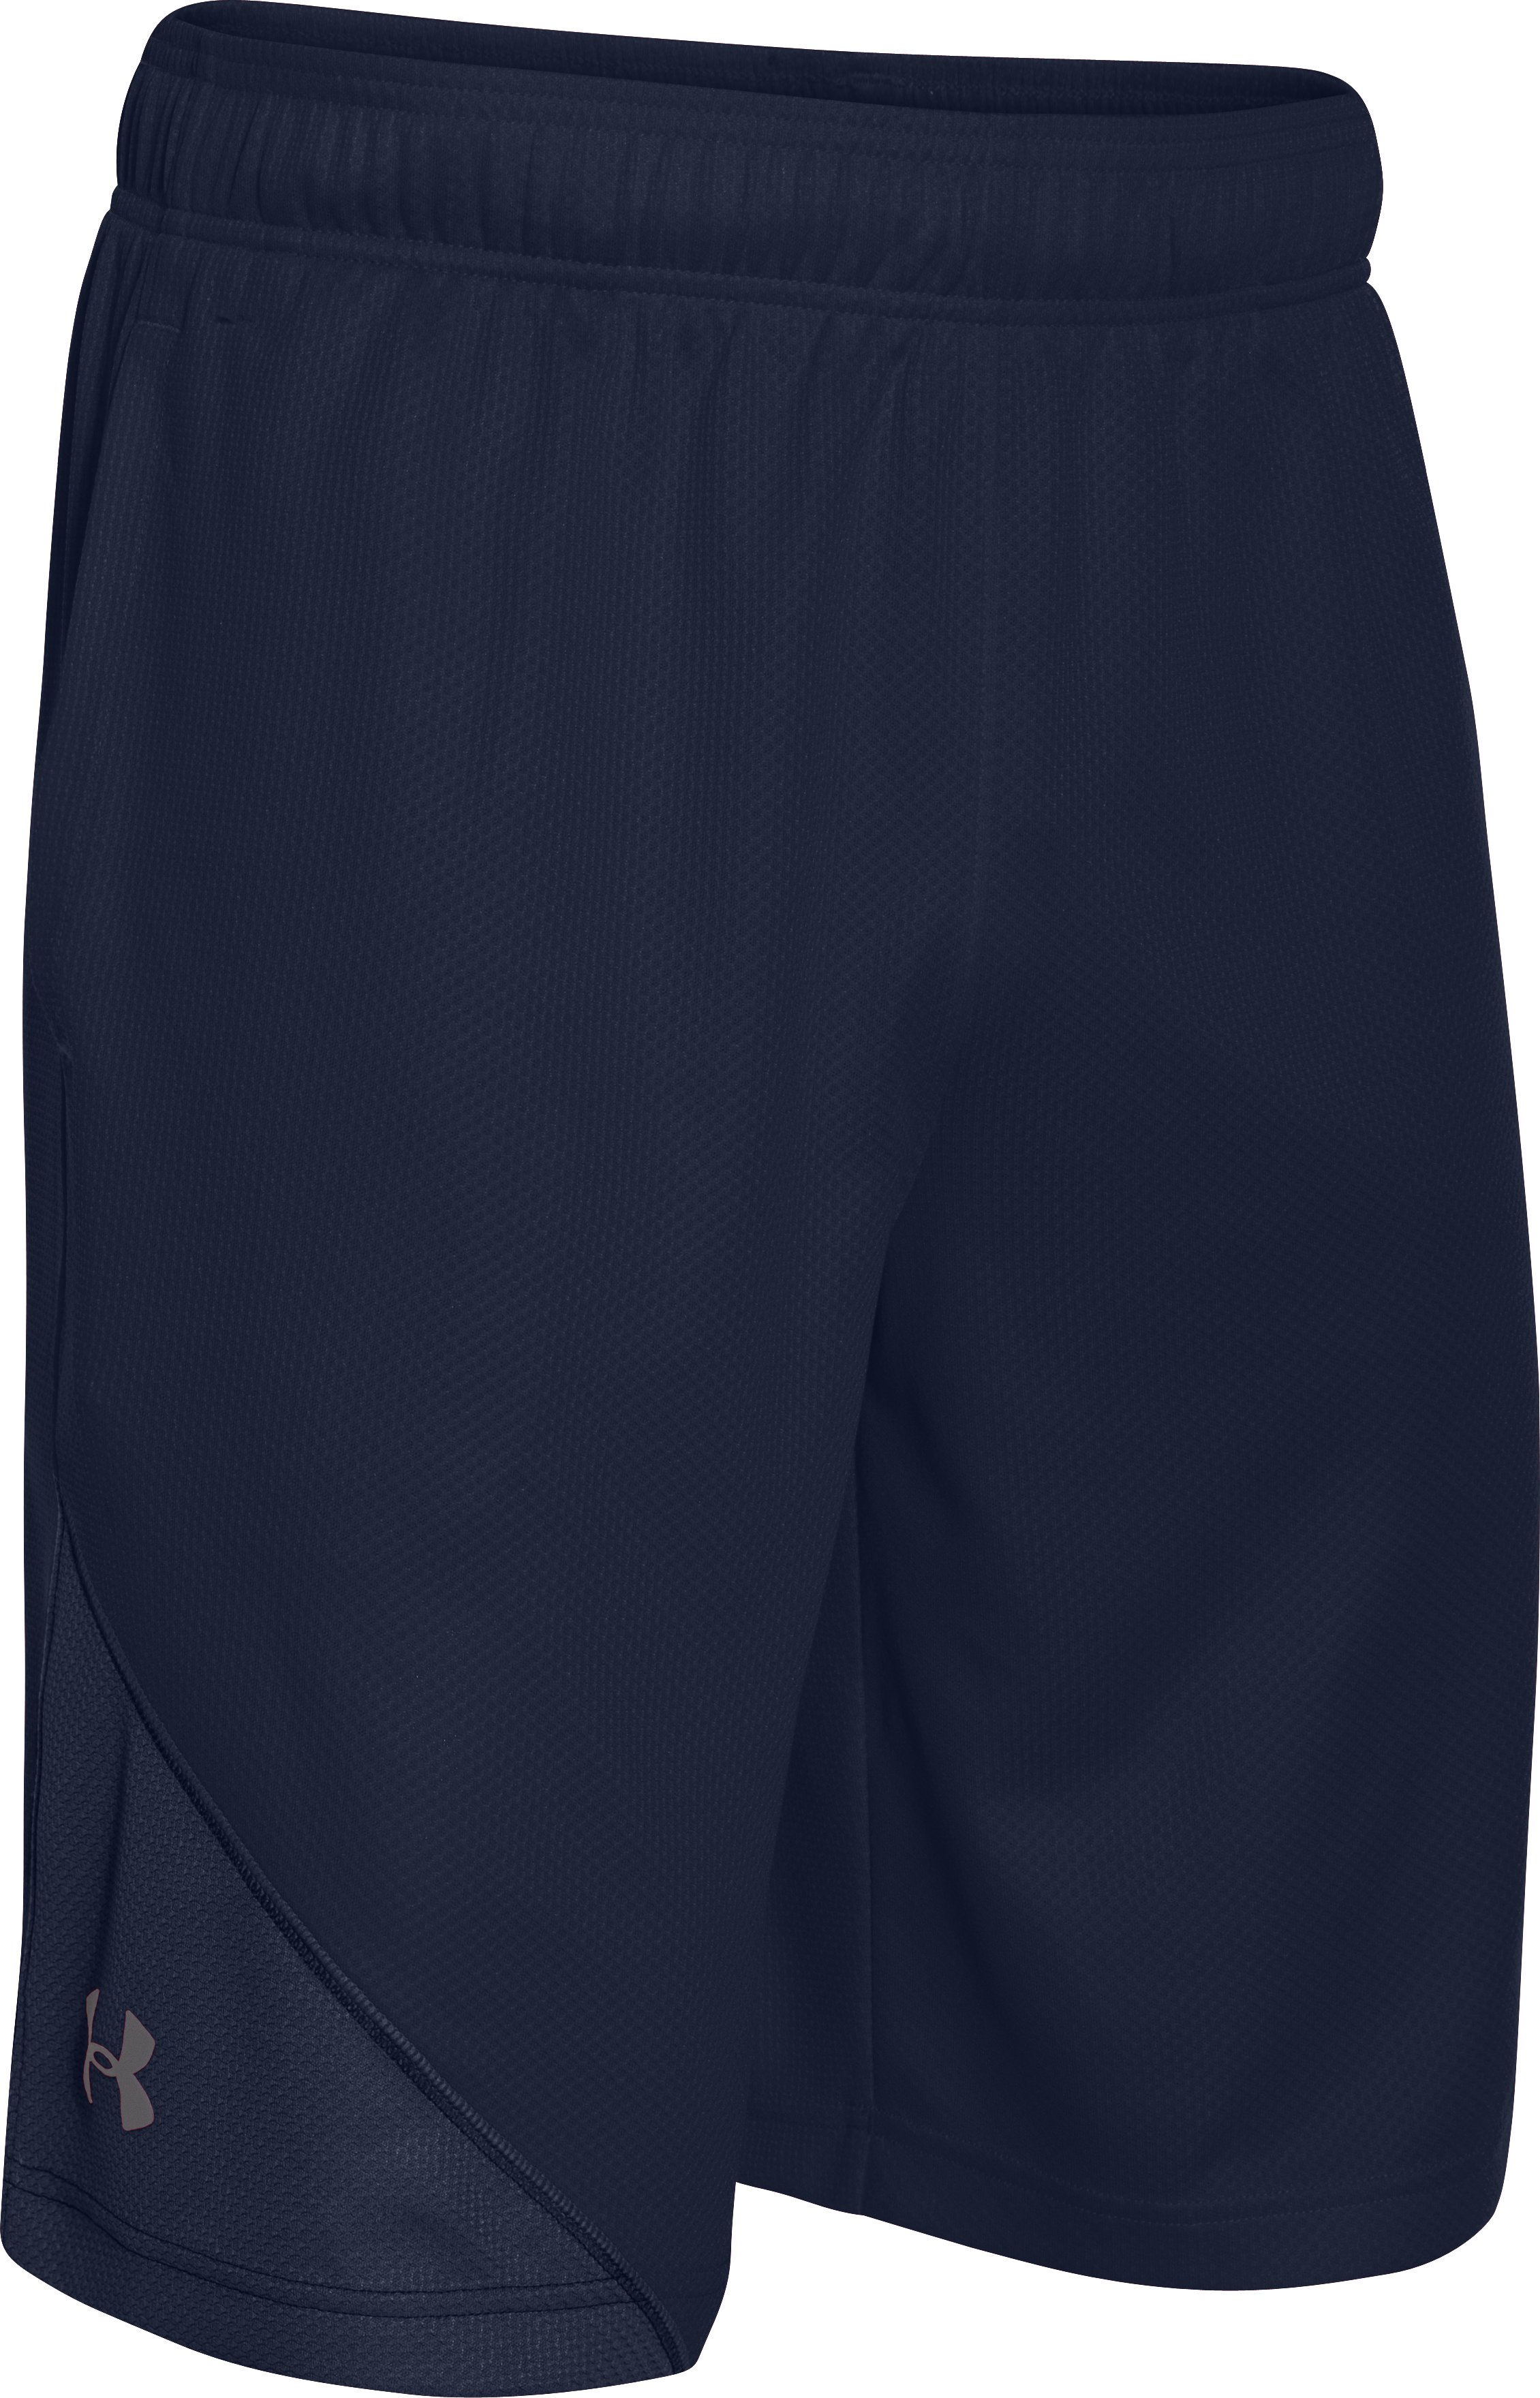 Men's UA Quarter Shorts, Midnight Navy,